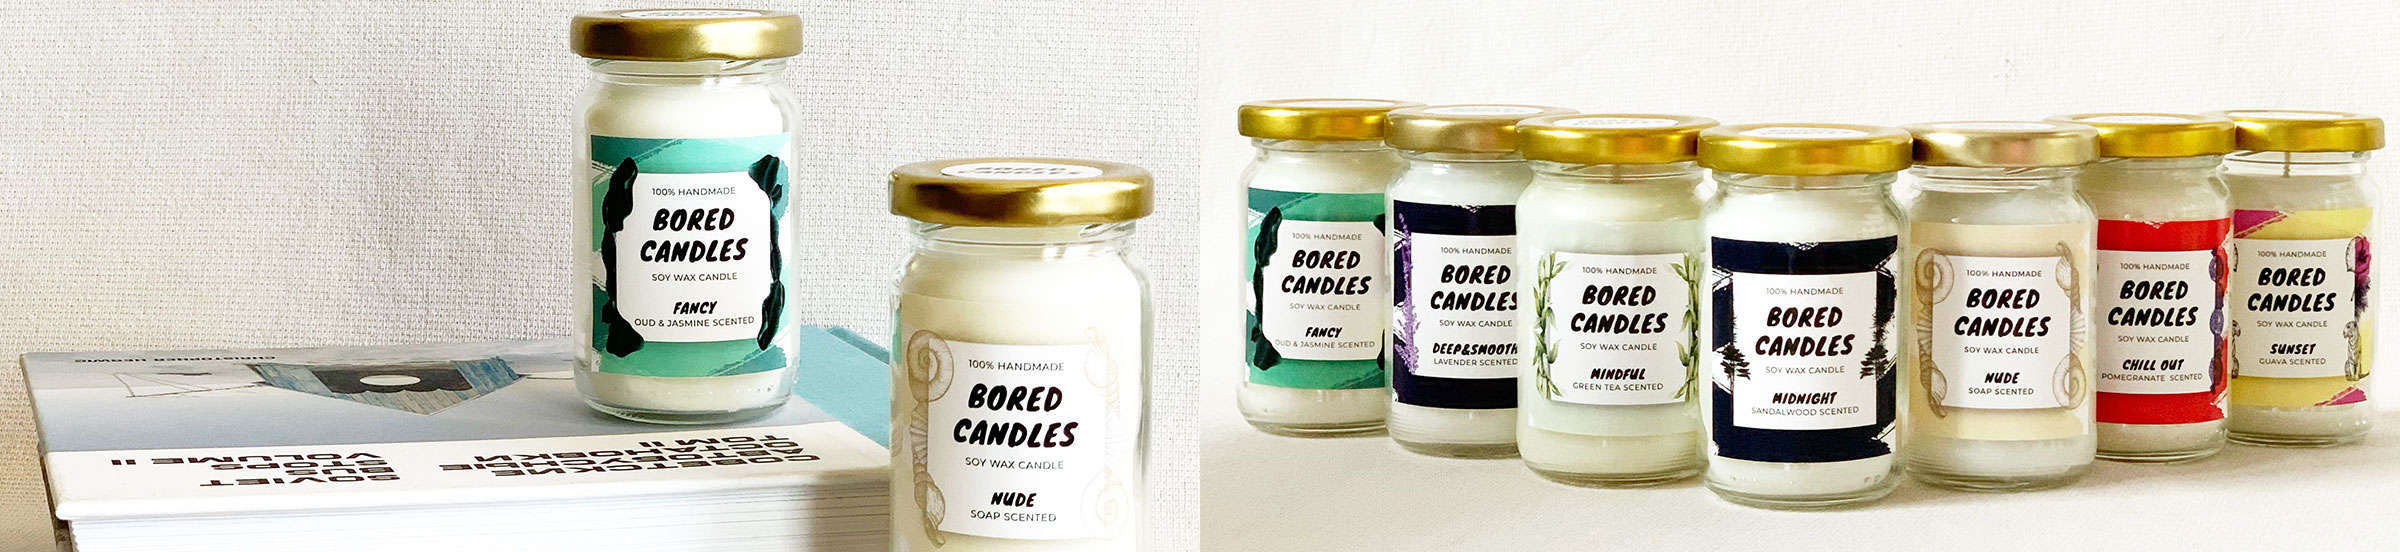 Bored Candles